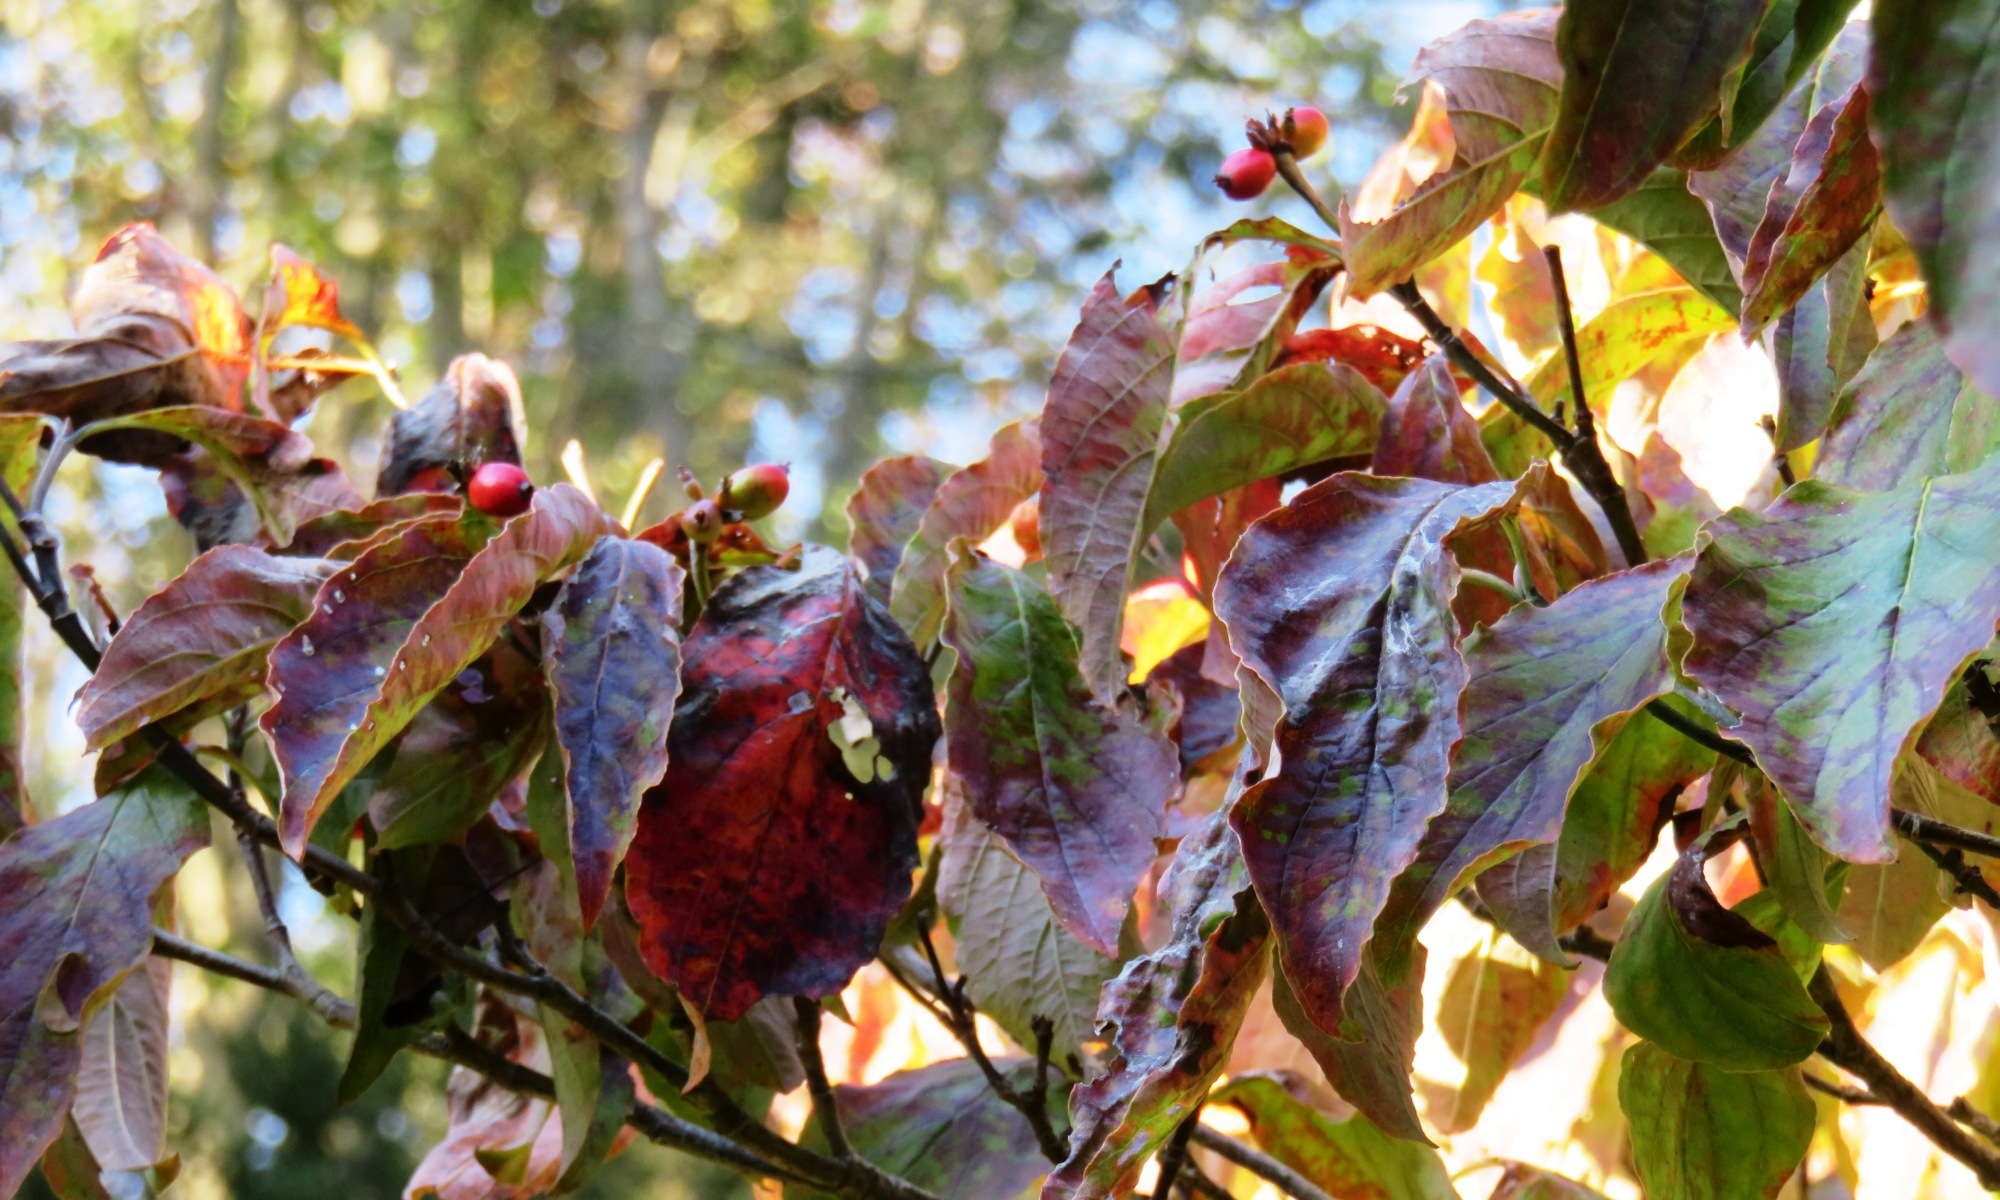 Close-up of wrinkled burgunday, red and green Dogwood leaves with red berries on a branch amidst blue sky backdrop